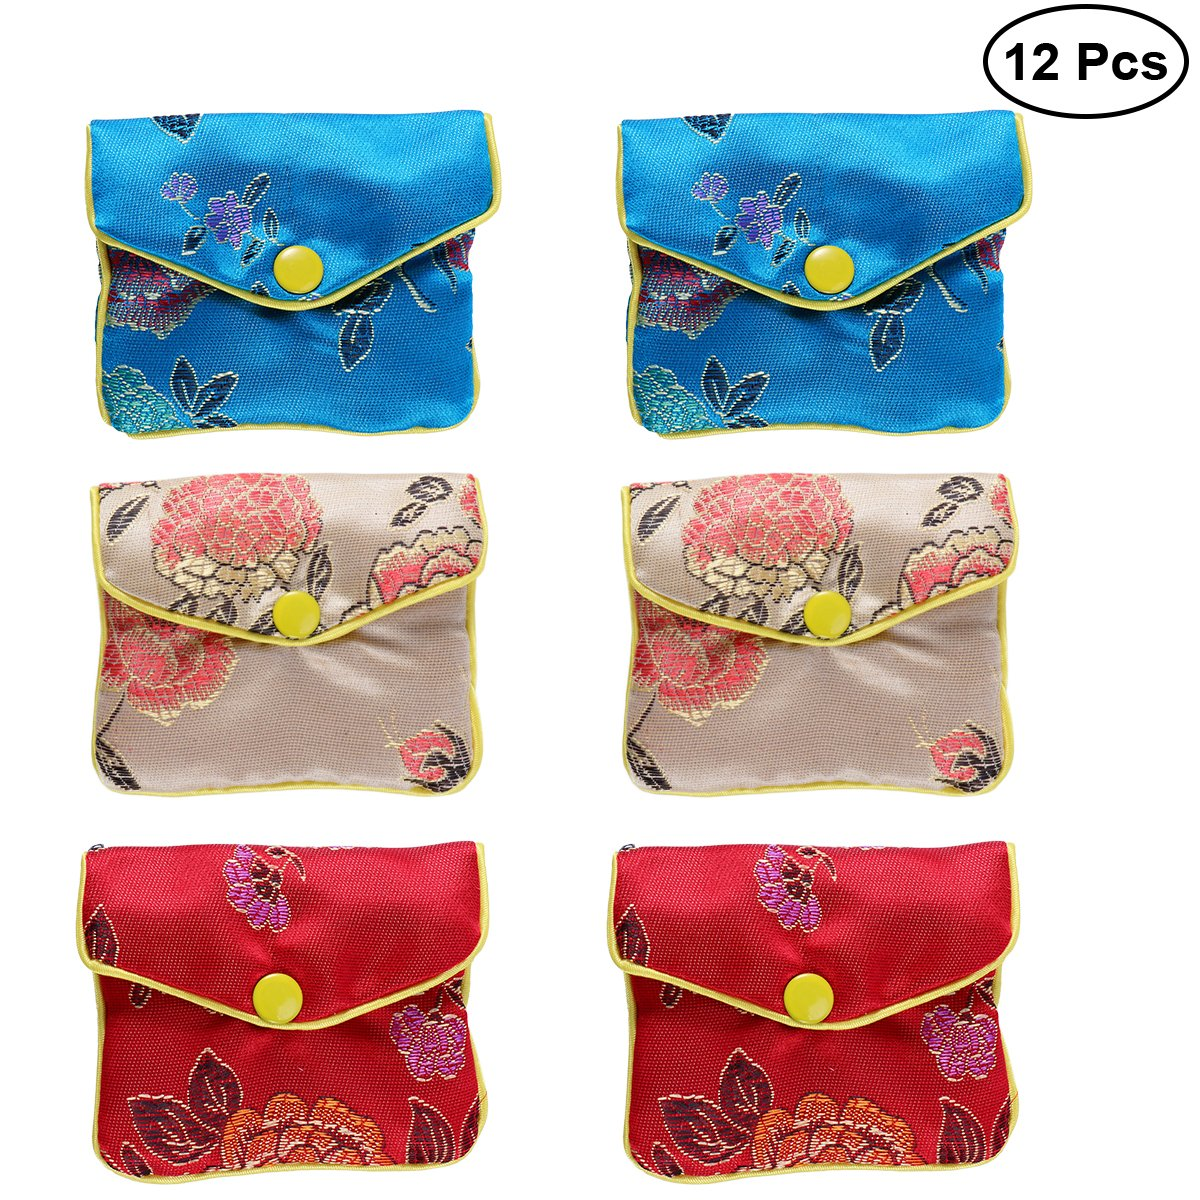 NUOLUX 12pcs Chinese Traditional Brocade Pouch Silk Embroidery Pouch  Jewelry Bag  Amazon.co.uk  Jewellery 0c96fcc89